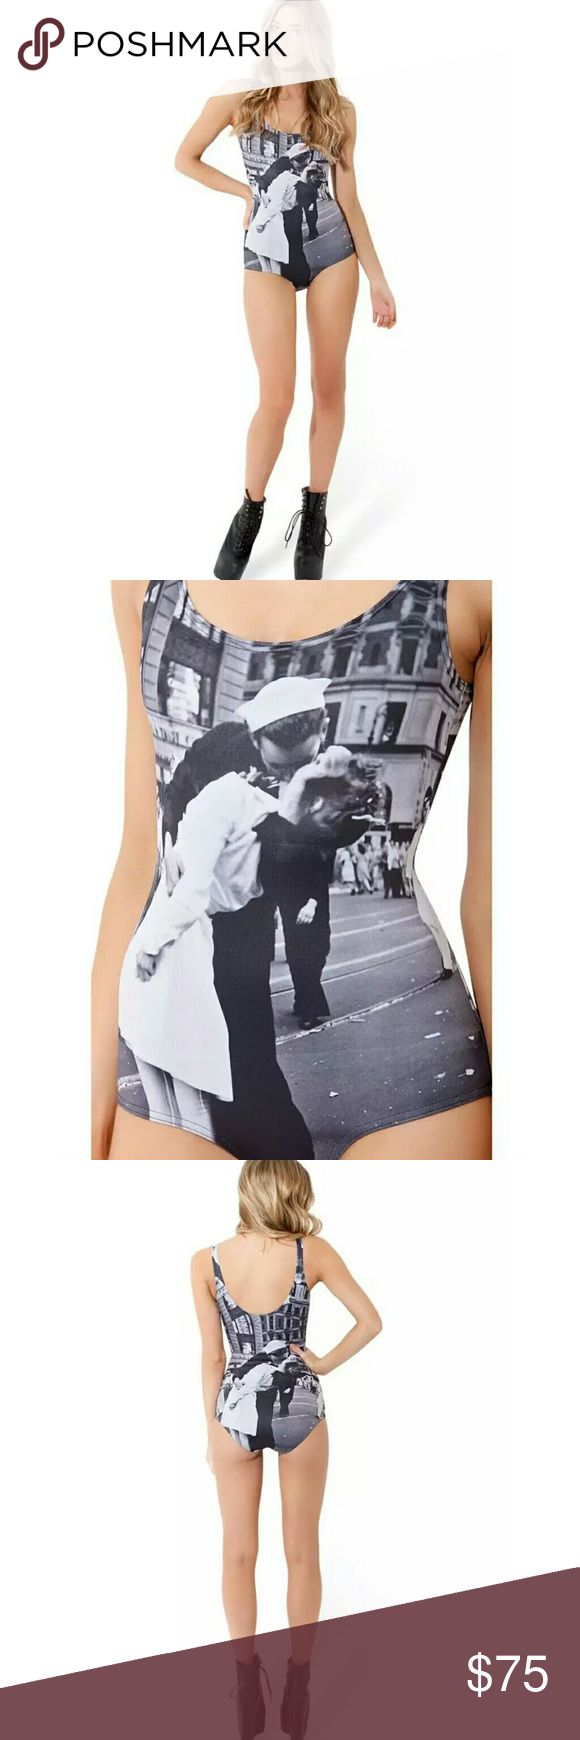 NWOT The Kiss Black and White Swimsuit NWOT new without tags The Kiss Black and White Swimsuit, tried on but never worn. Iconic photo taken in New York Times Square during WWII.  As far as iconic images go, this one's hard to top!  Composition: 82% Polyester, 18% LYCRA® Caress Lining: 85% Nylon, 15% Elastane Made in: Australia Blackmilk Swim One Pieces